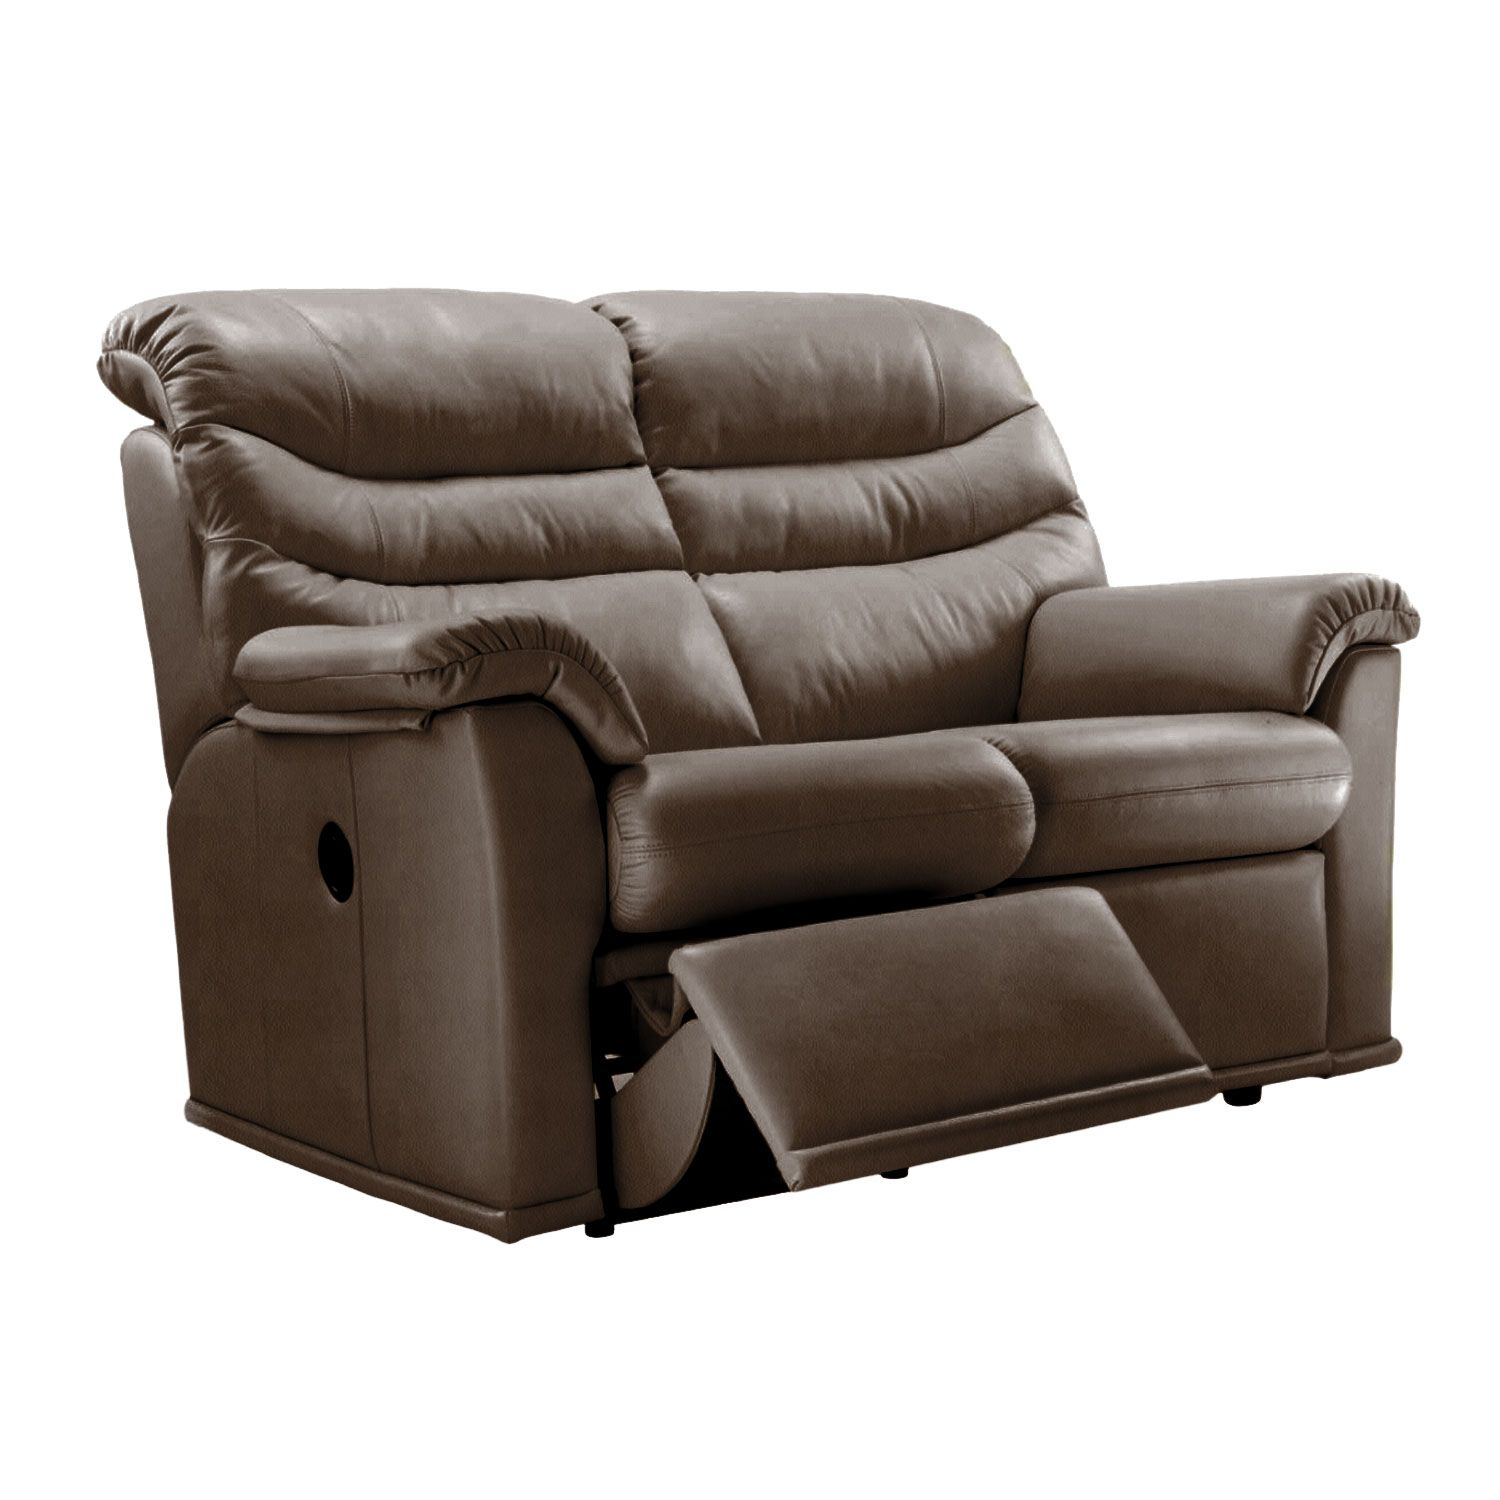 Image of G Plan Malvern 17 2 Seater Double Manual Recliner Leather Sofa